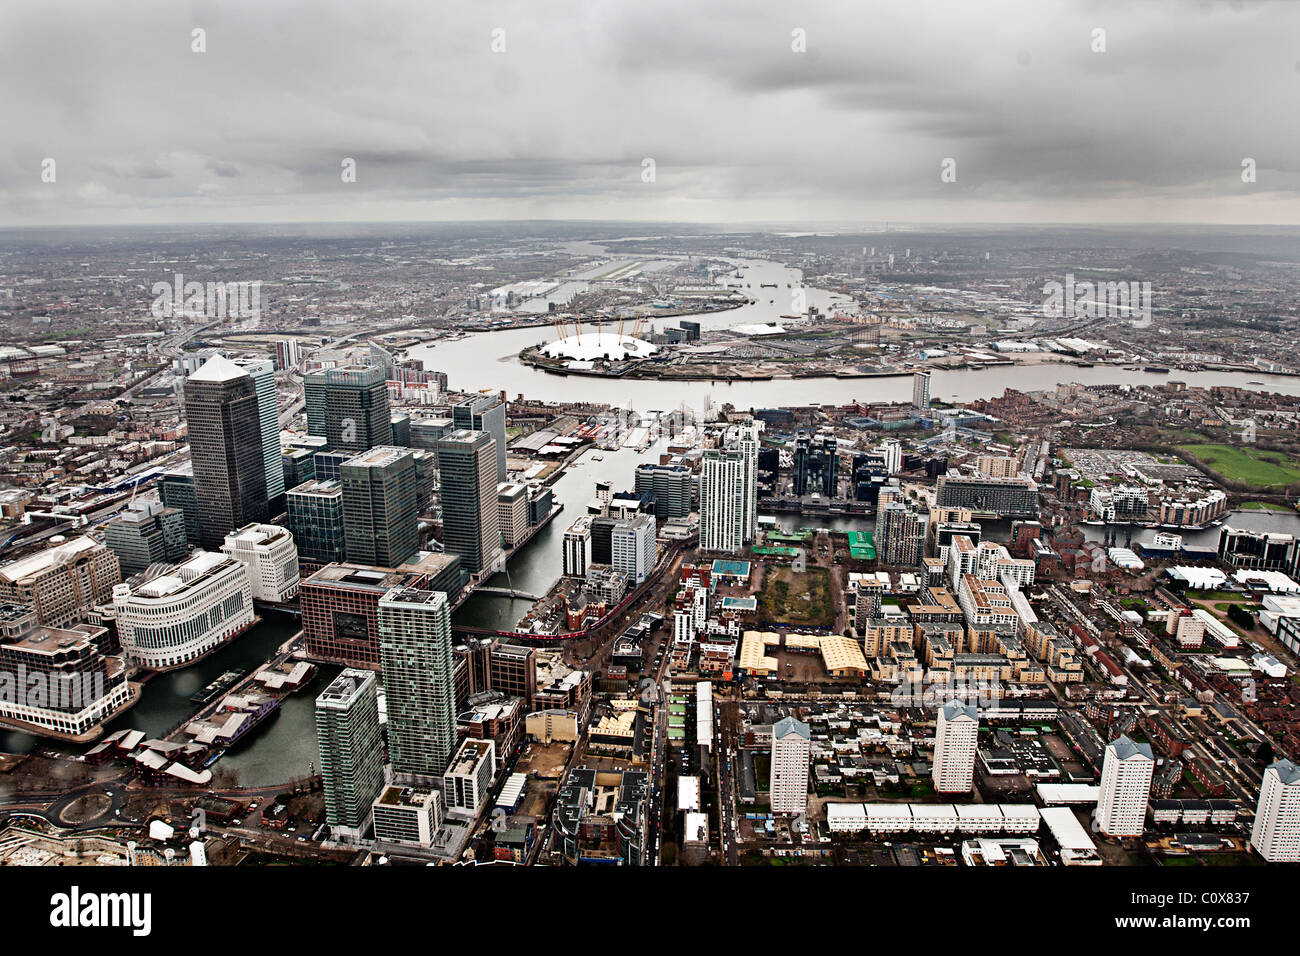 Aerial Shot of the Canary Wharf Estate on a Gloomy Day. Views over to the o2 Arena on the Greenwich Peninsula behind - Stock Image